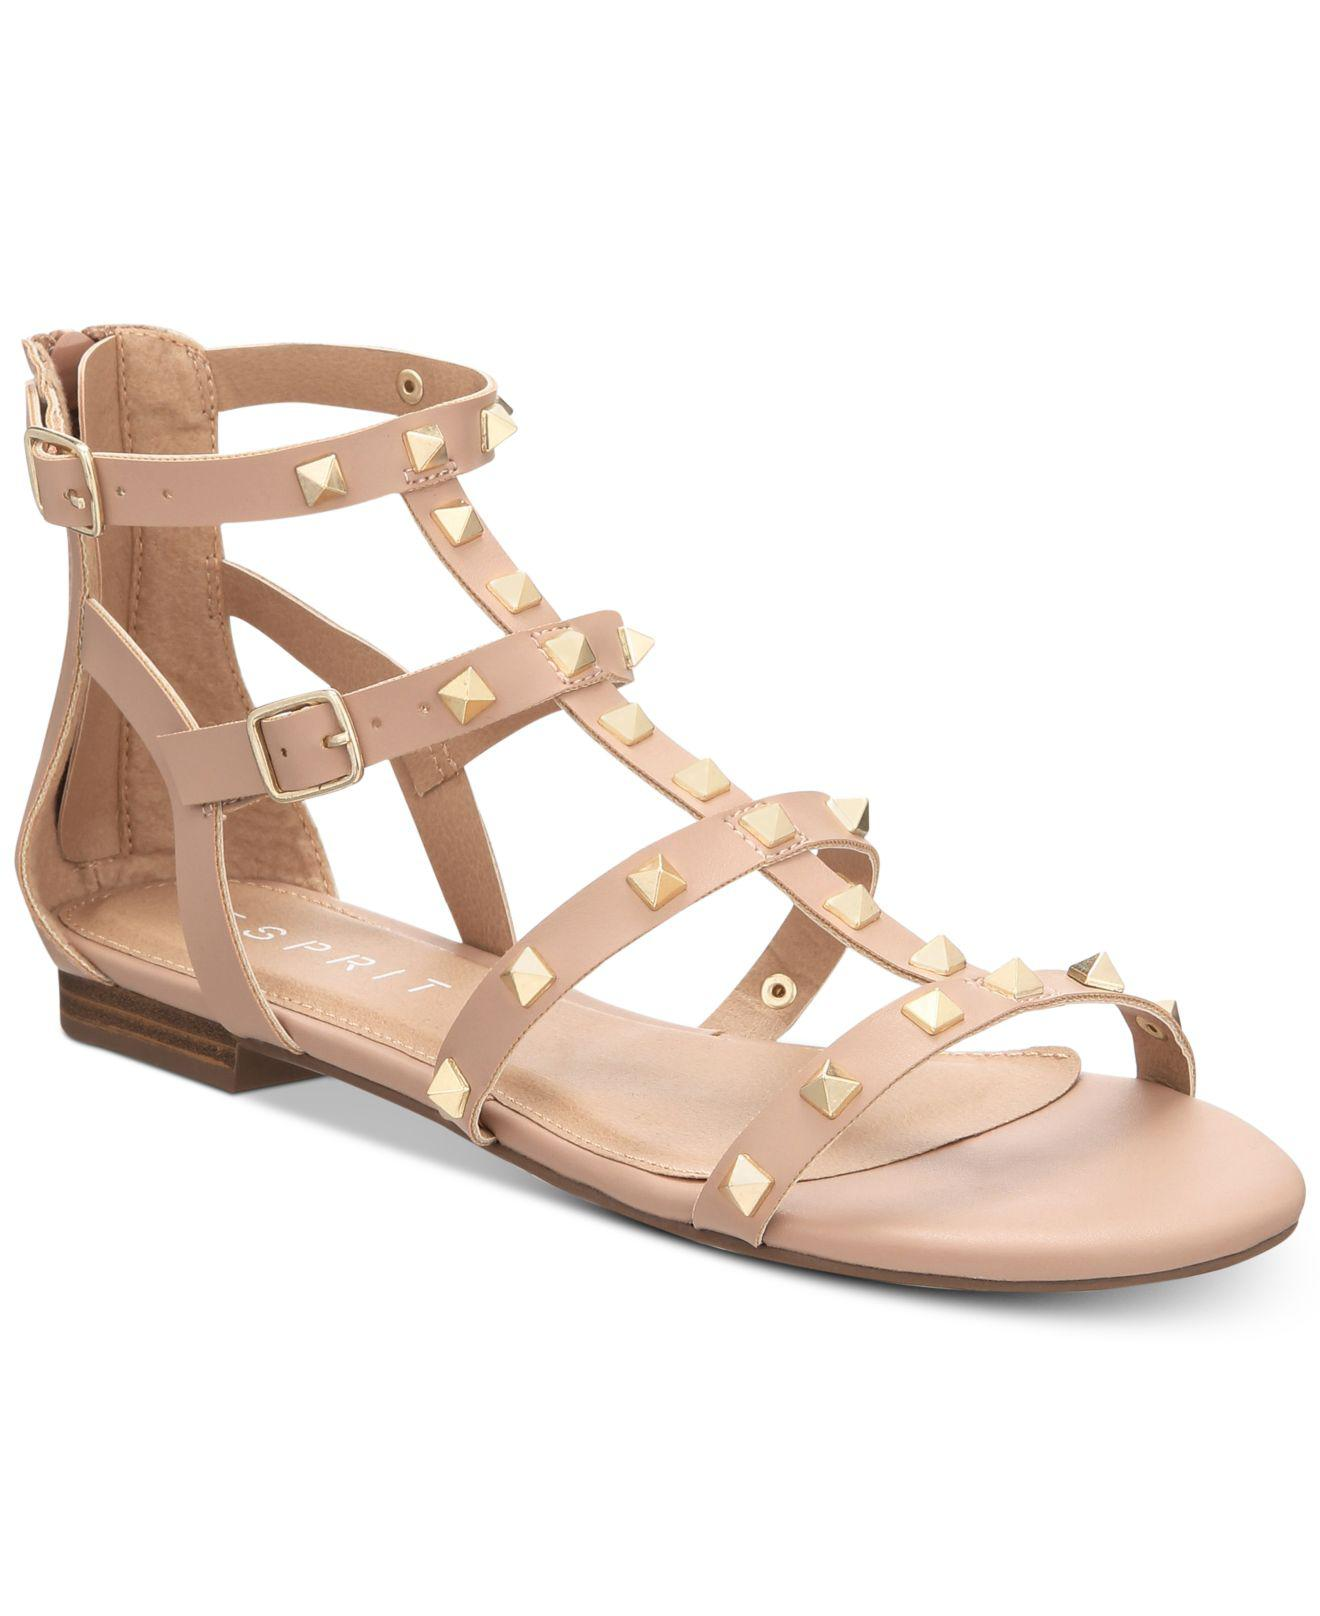 Esprit Keira Embellished Gladiator Flat Sandals Women's Shoes 5s01pW6w7